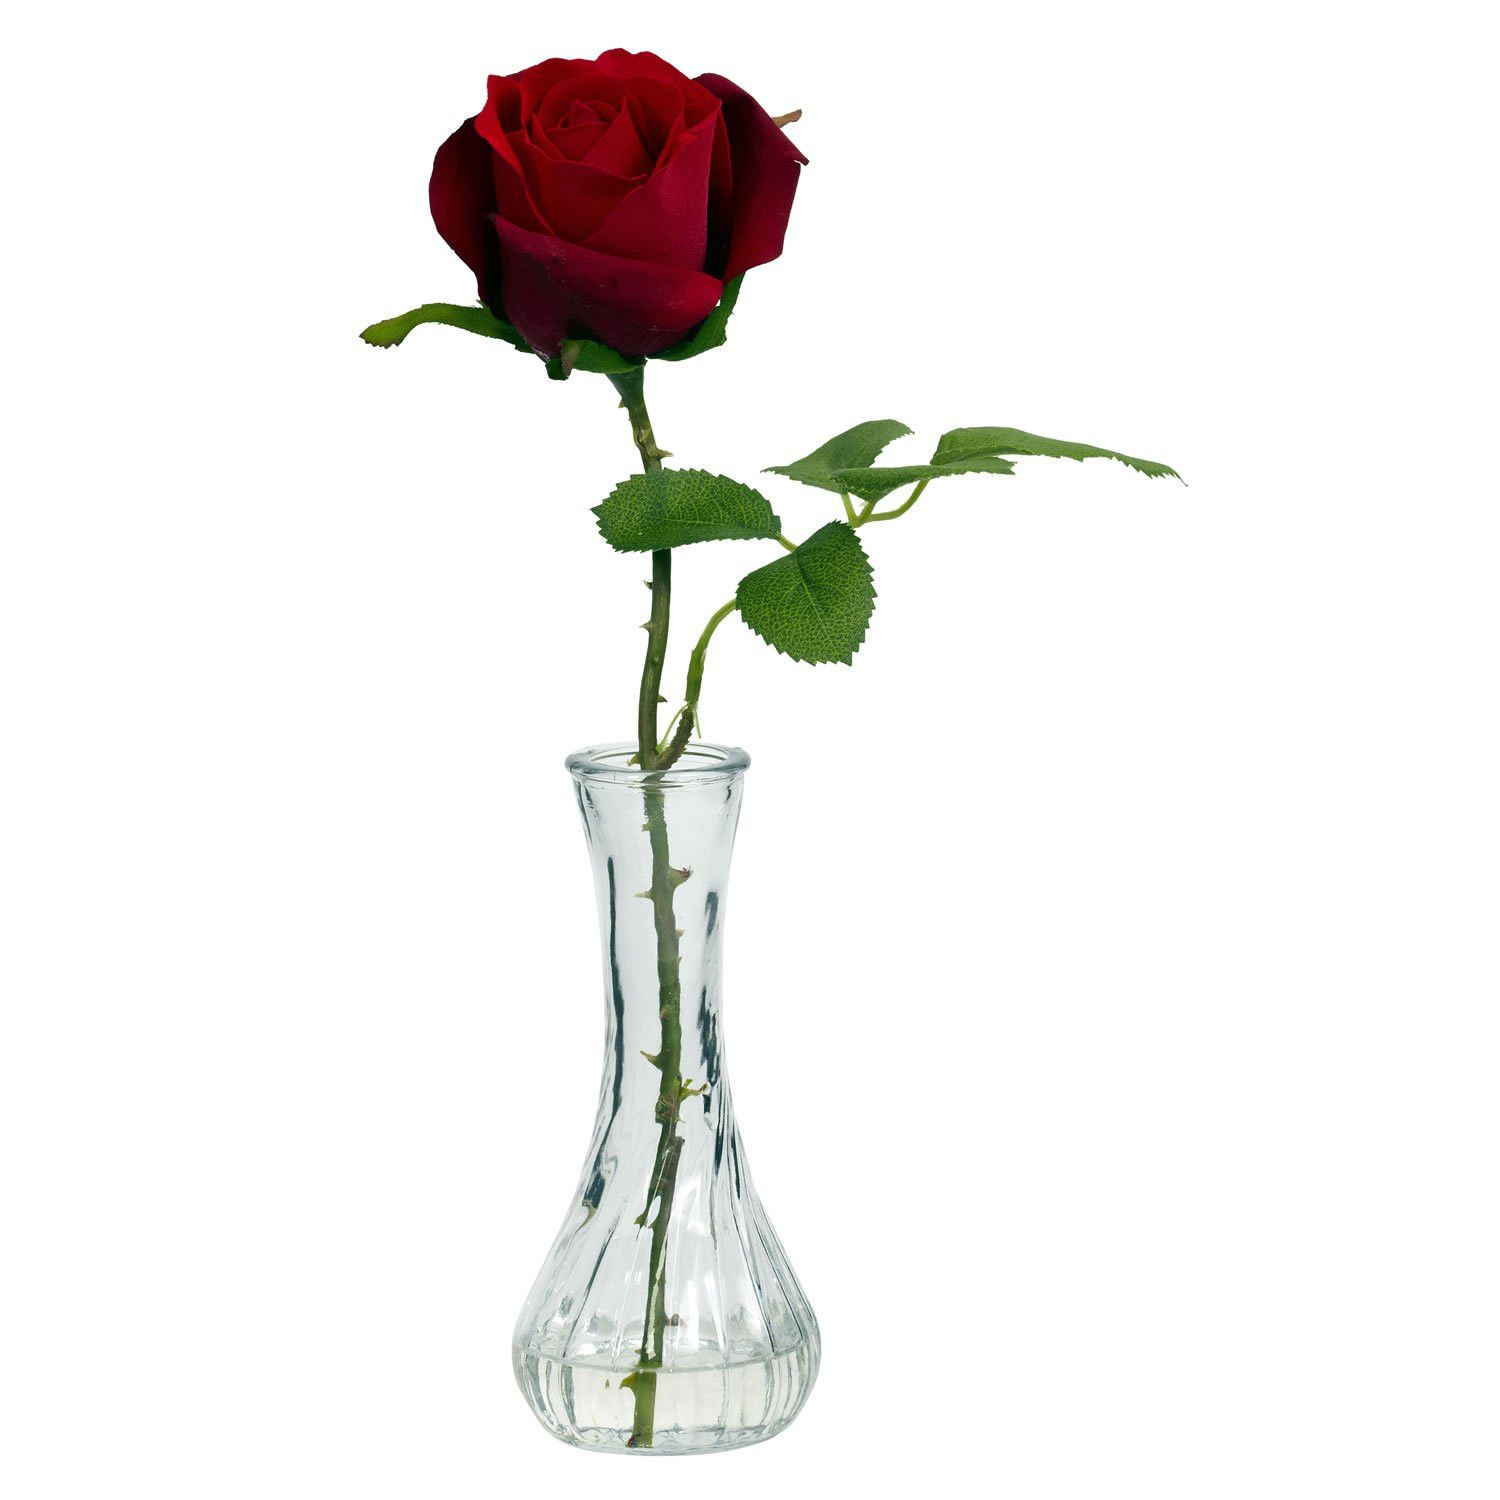 Flower Delivery without Vase Of Pictures Of Roses In A Vase Inspirational Vase Redh Vases Single In Pictures Of Roses In A Vase Inspirational Vase Redh Vases Single Rose In Vasei 0d A